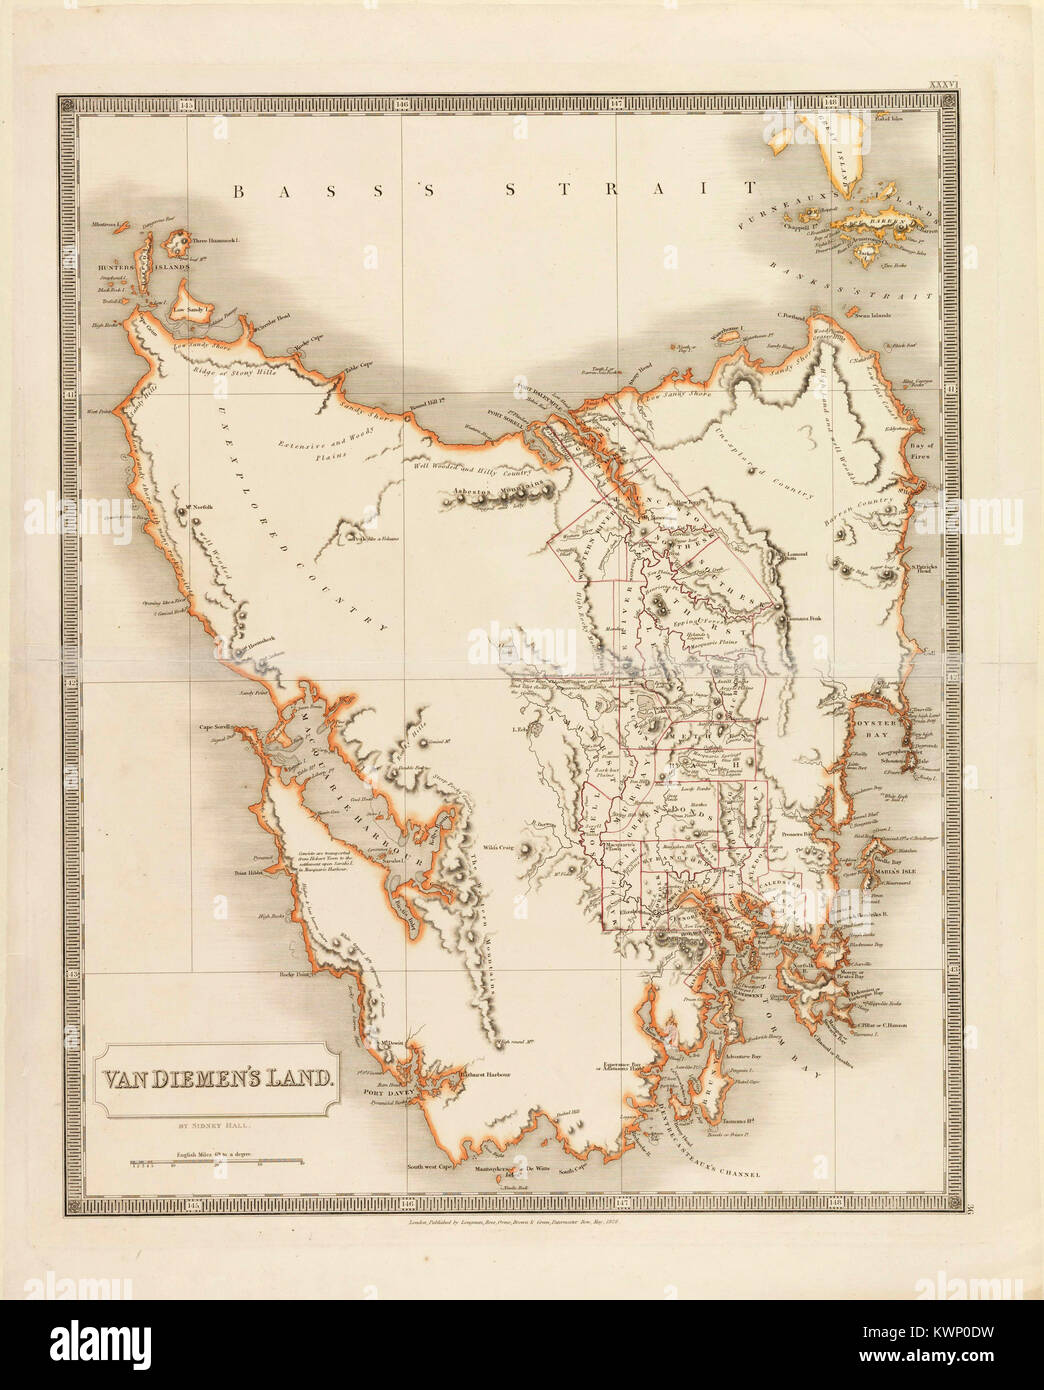 Van Diemen's Land was the original name used by most Europeans for the island of Tasmania, now part of Australia. - Stock Image